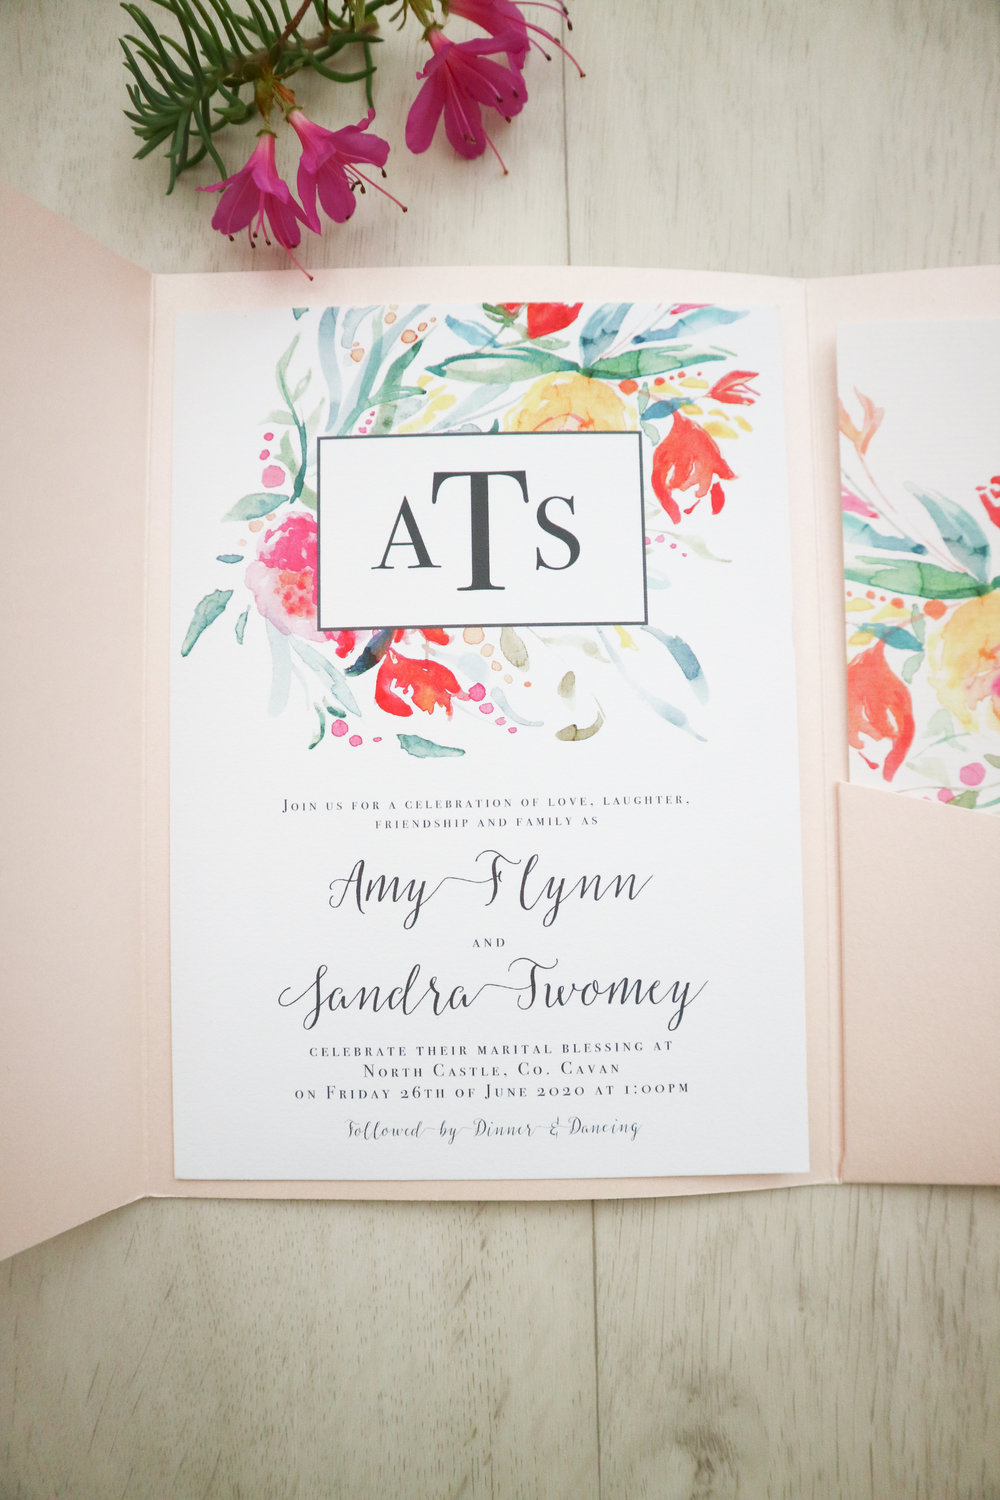 Little-Bow-Print-Wedding-Invitations-Waterford-Eden-photography-Boquet-Monogram-Confetti-11.jpg